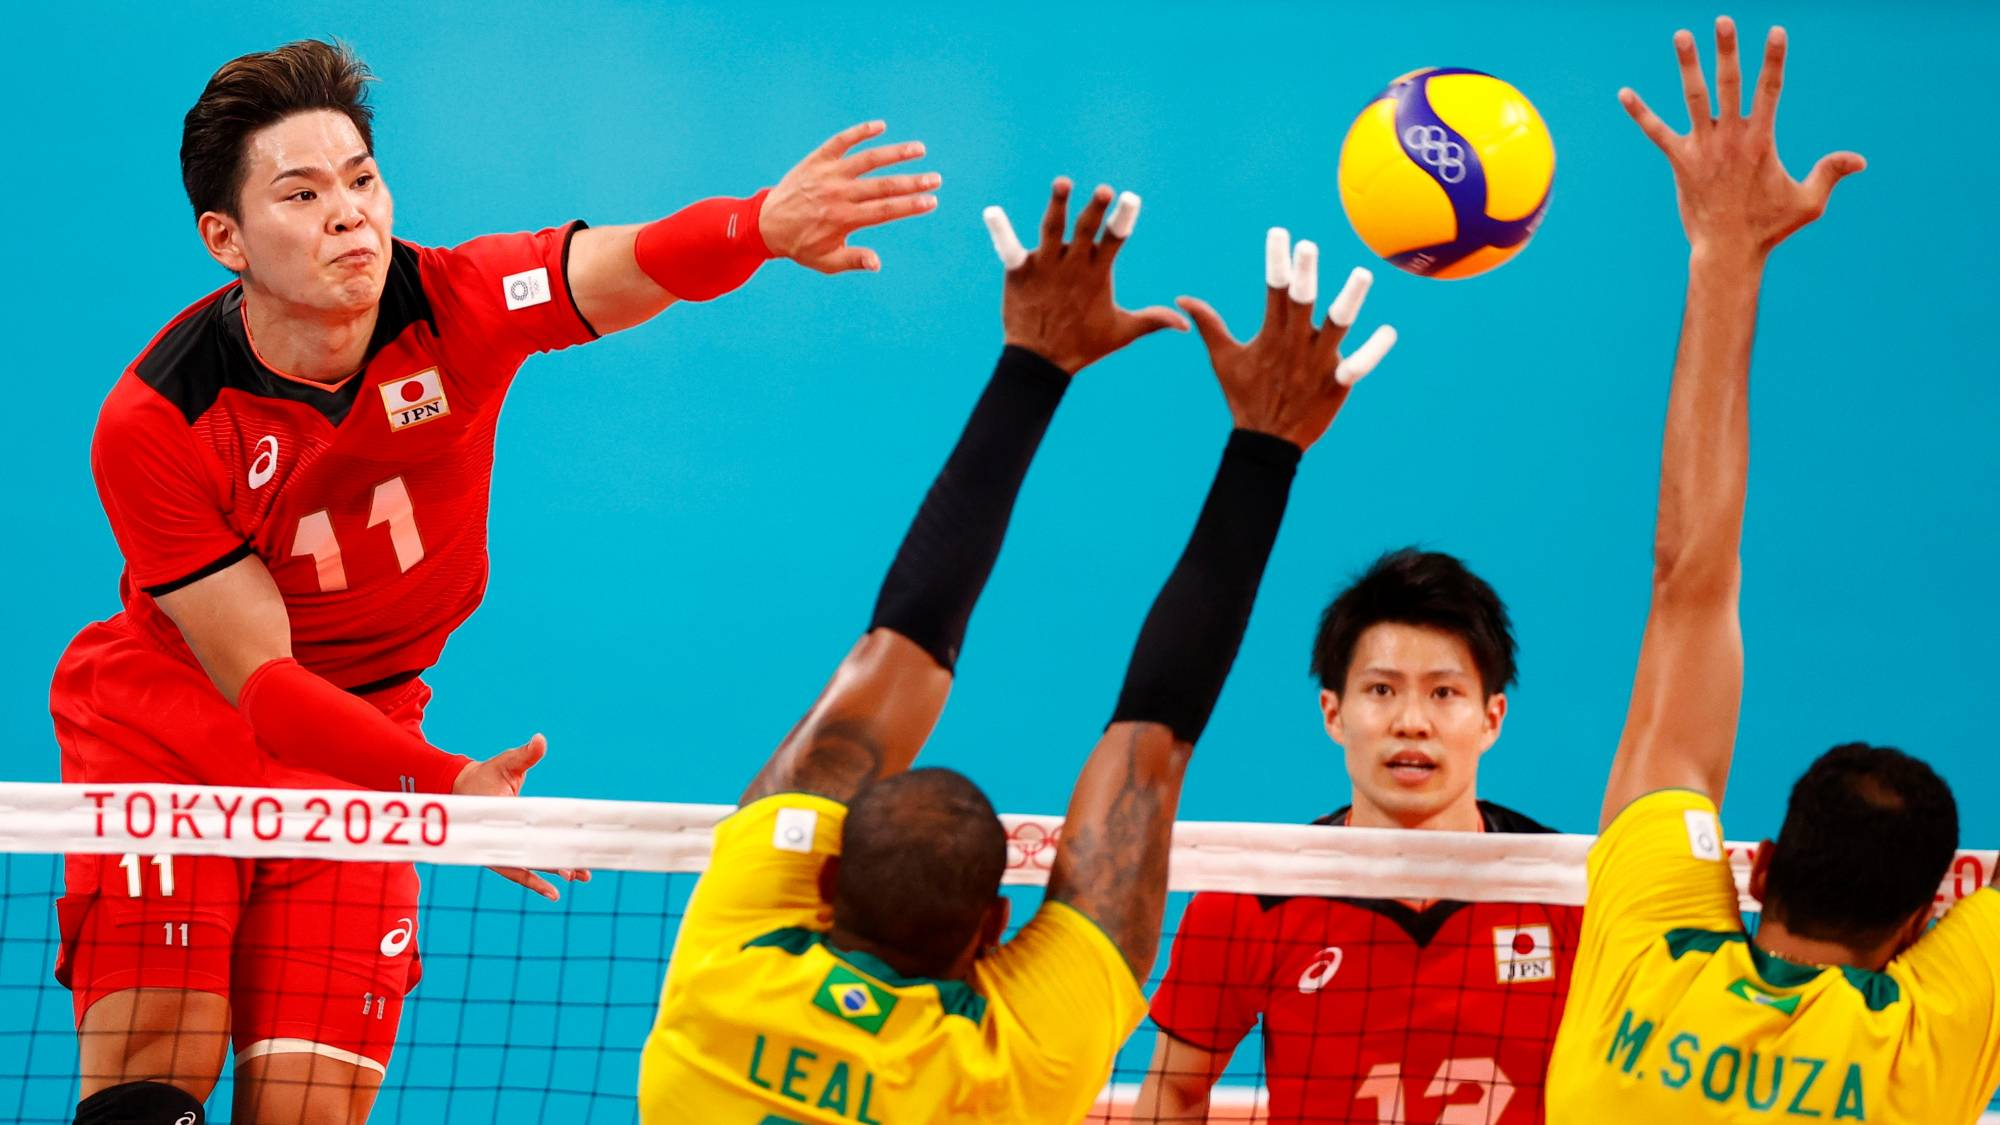 Yuji Nishida of Japan hits the ball as Brazil's Leal and Mauricio Souza go up for a block during their men's quarterfinal match on Tuesday.    REUTERS